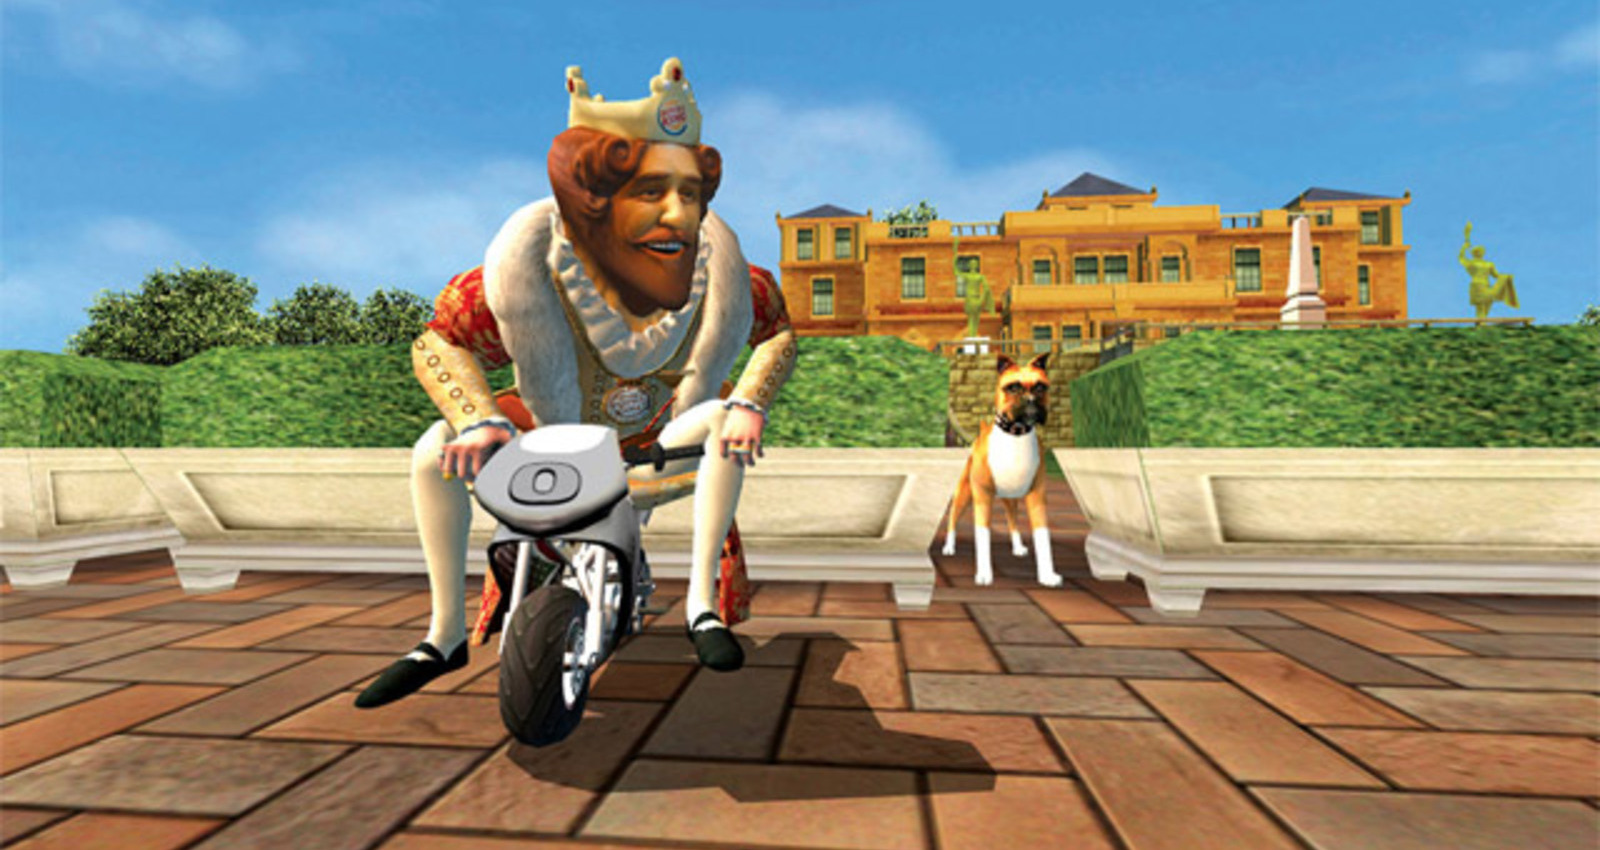 Xbox Games: Sneak King; Pocket Bike Racer; Big Bumpin'